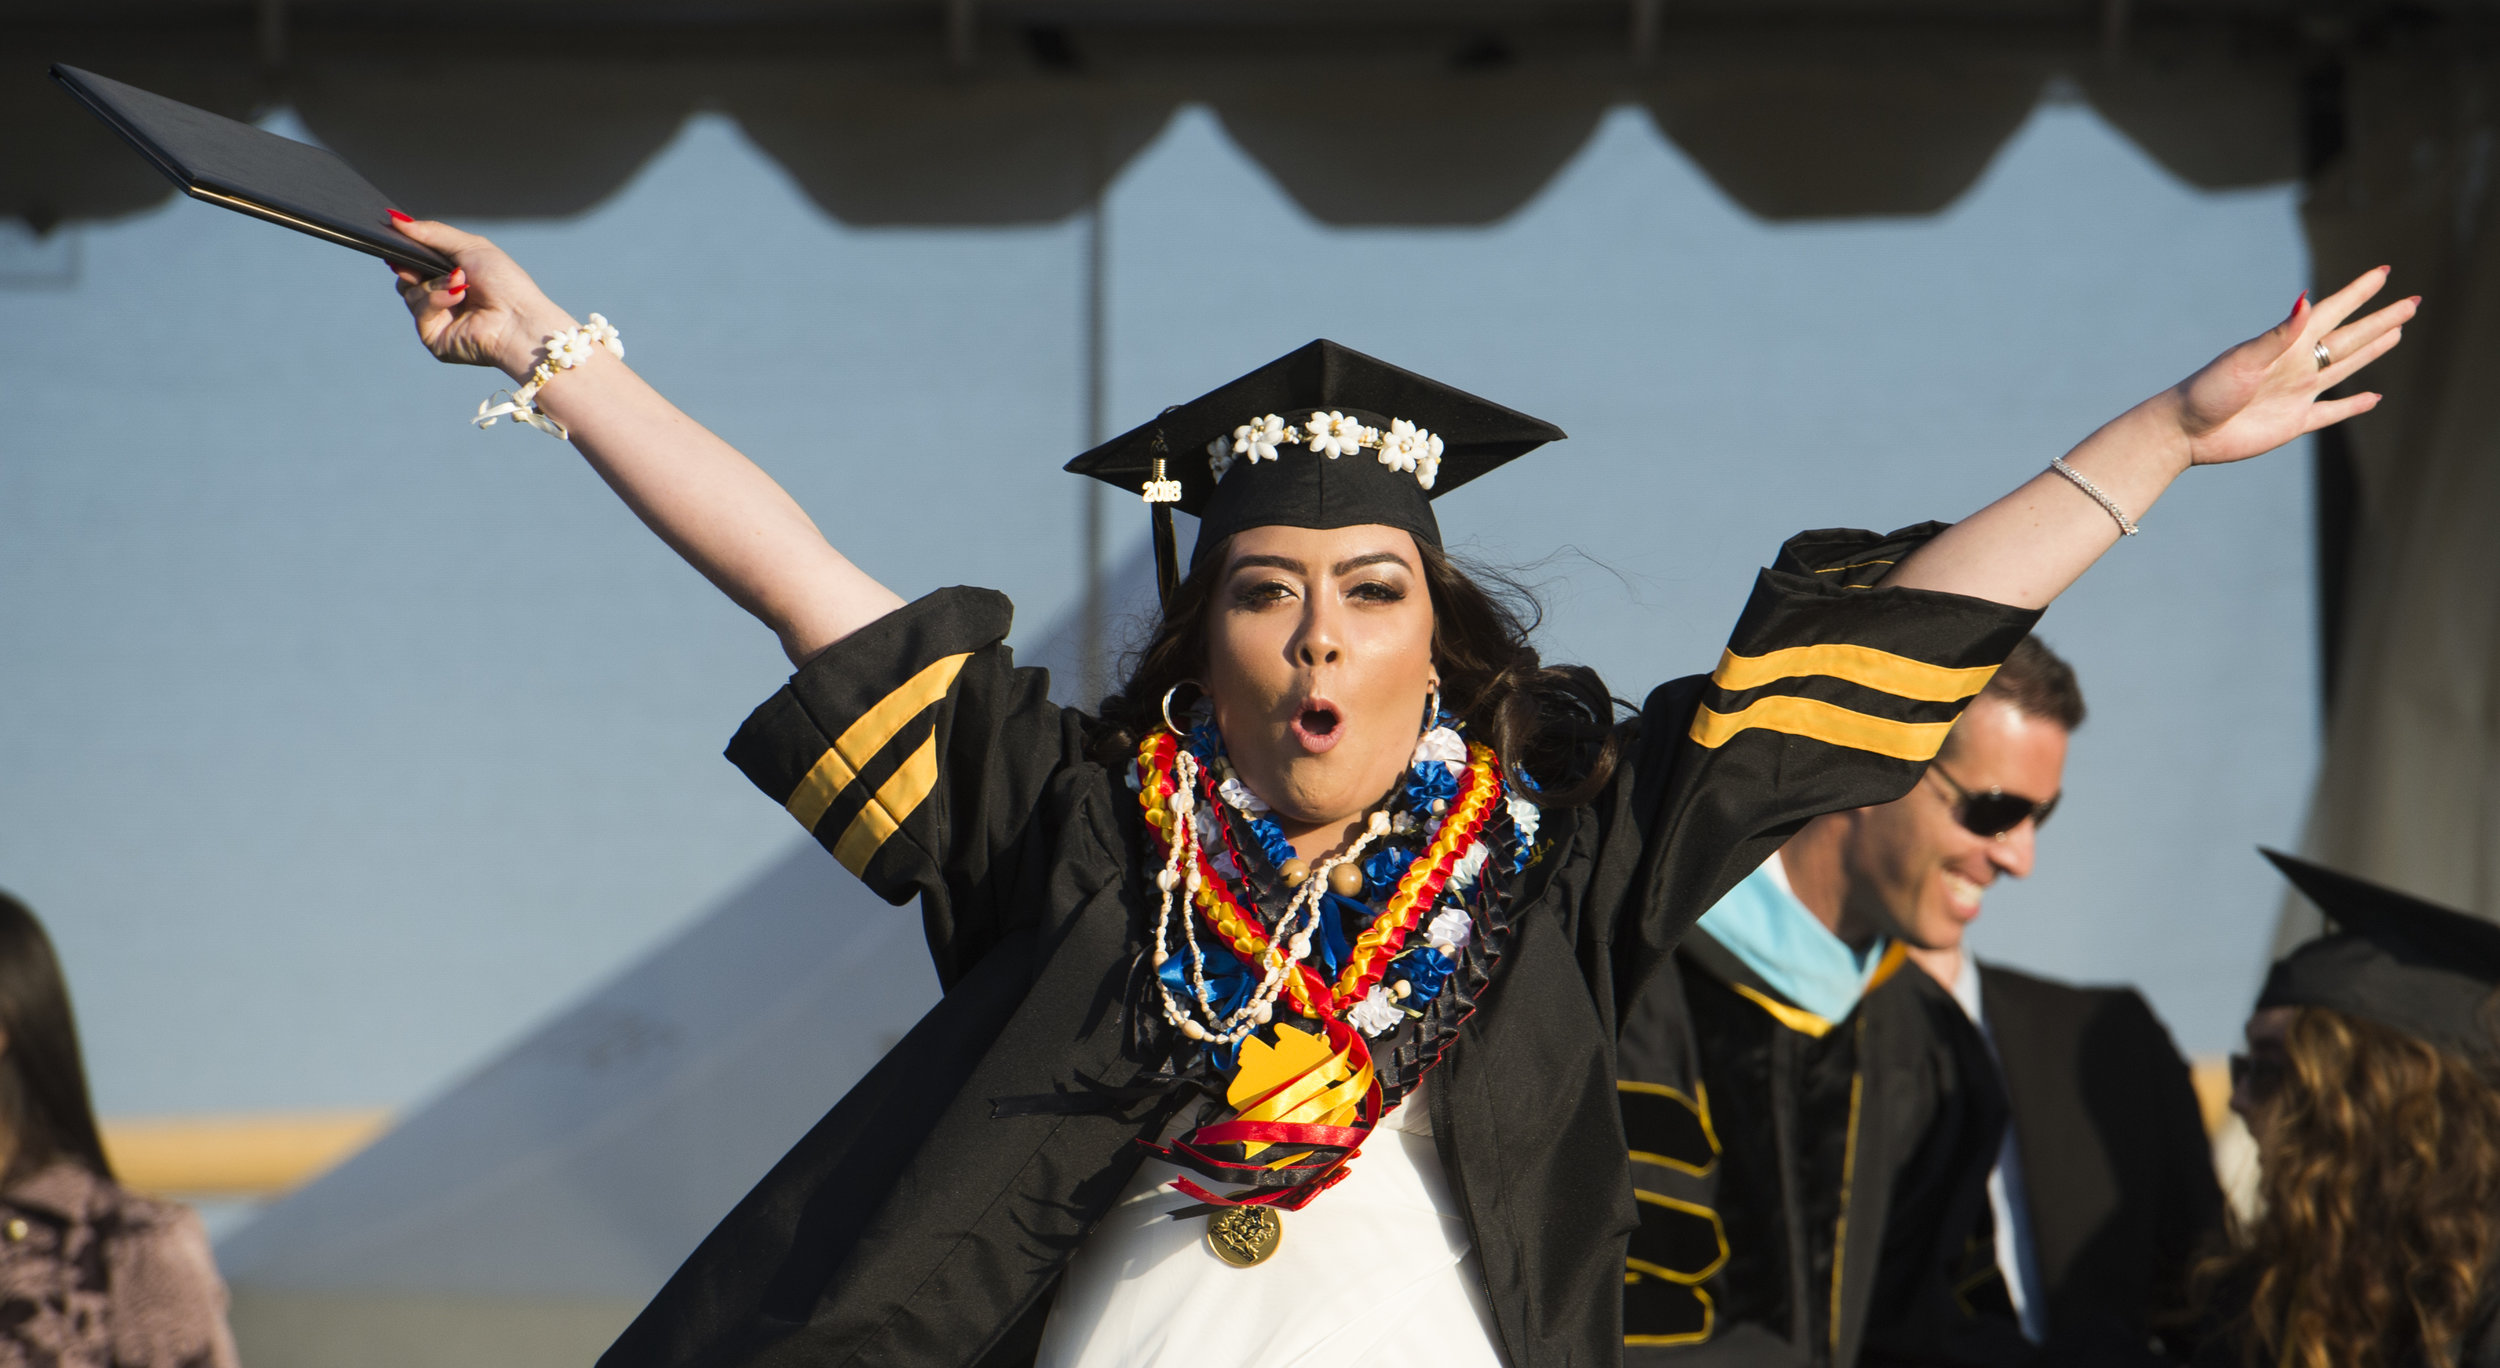 Alexis West celebrates after getting her diploma during the Peninsula High School graduation ceremony in Rolling Hills Estates, Thursday, June 7, 2018. Peninsula graduated 598 students this year.